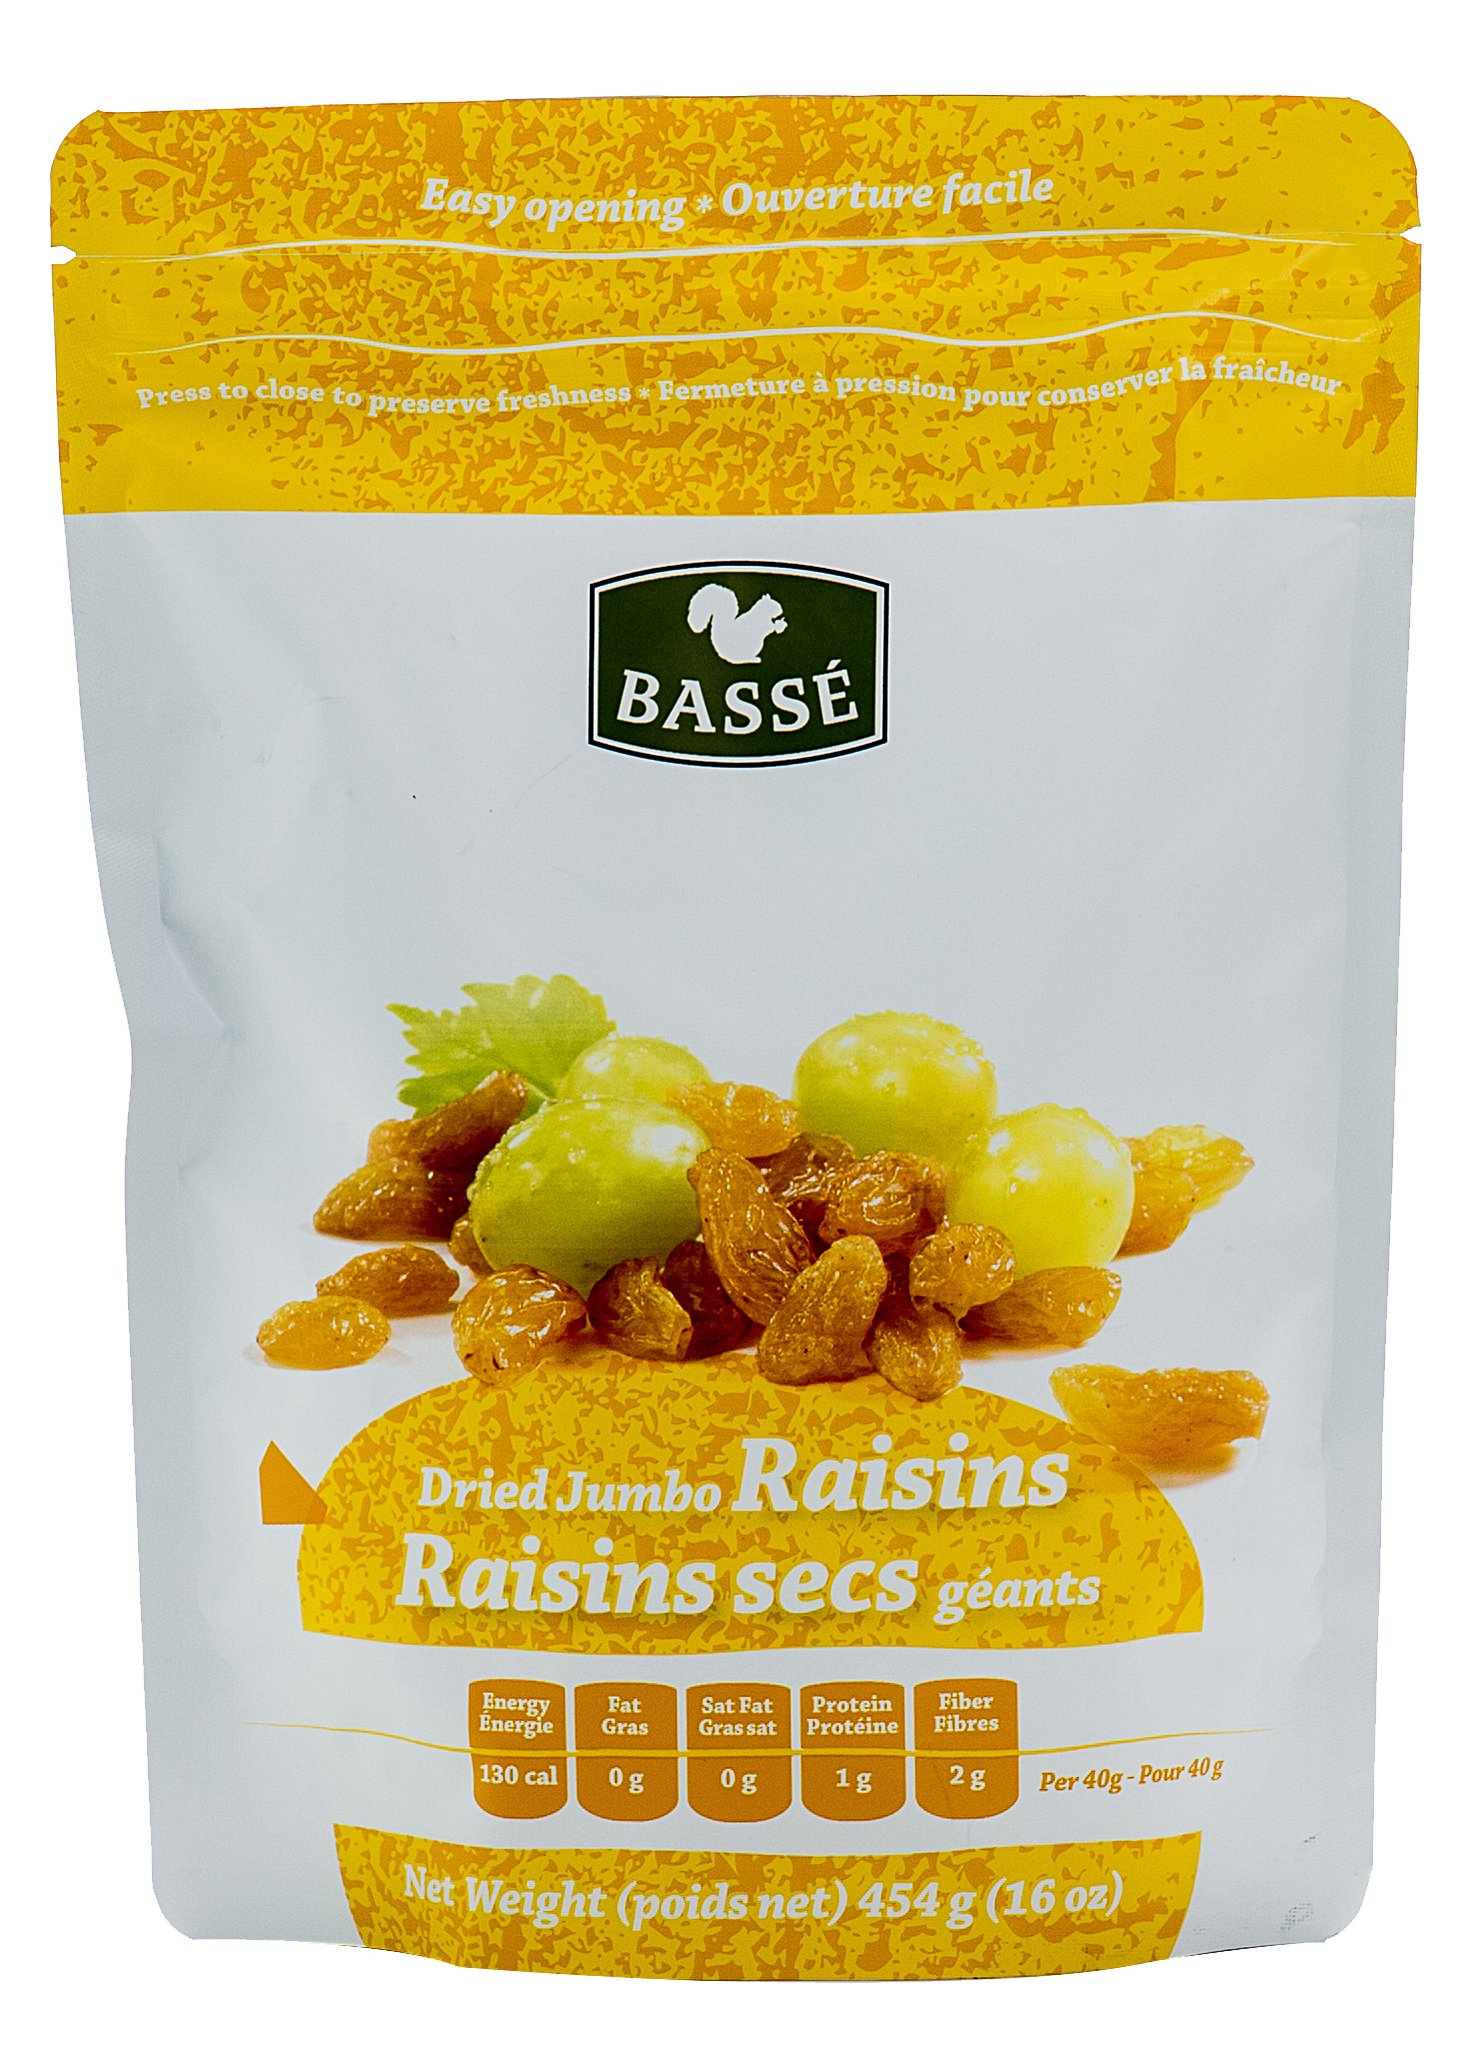 Golden Raisins, 1 Pound Bag of Dried Jumbo Golden Raisins from Basse Dried Fruits - 1lb Bag of Delicious, Healthy Raisins (1 Pound Bag) by Basse Nuts